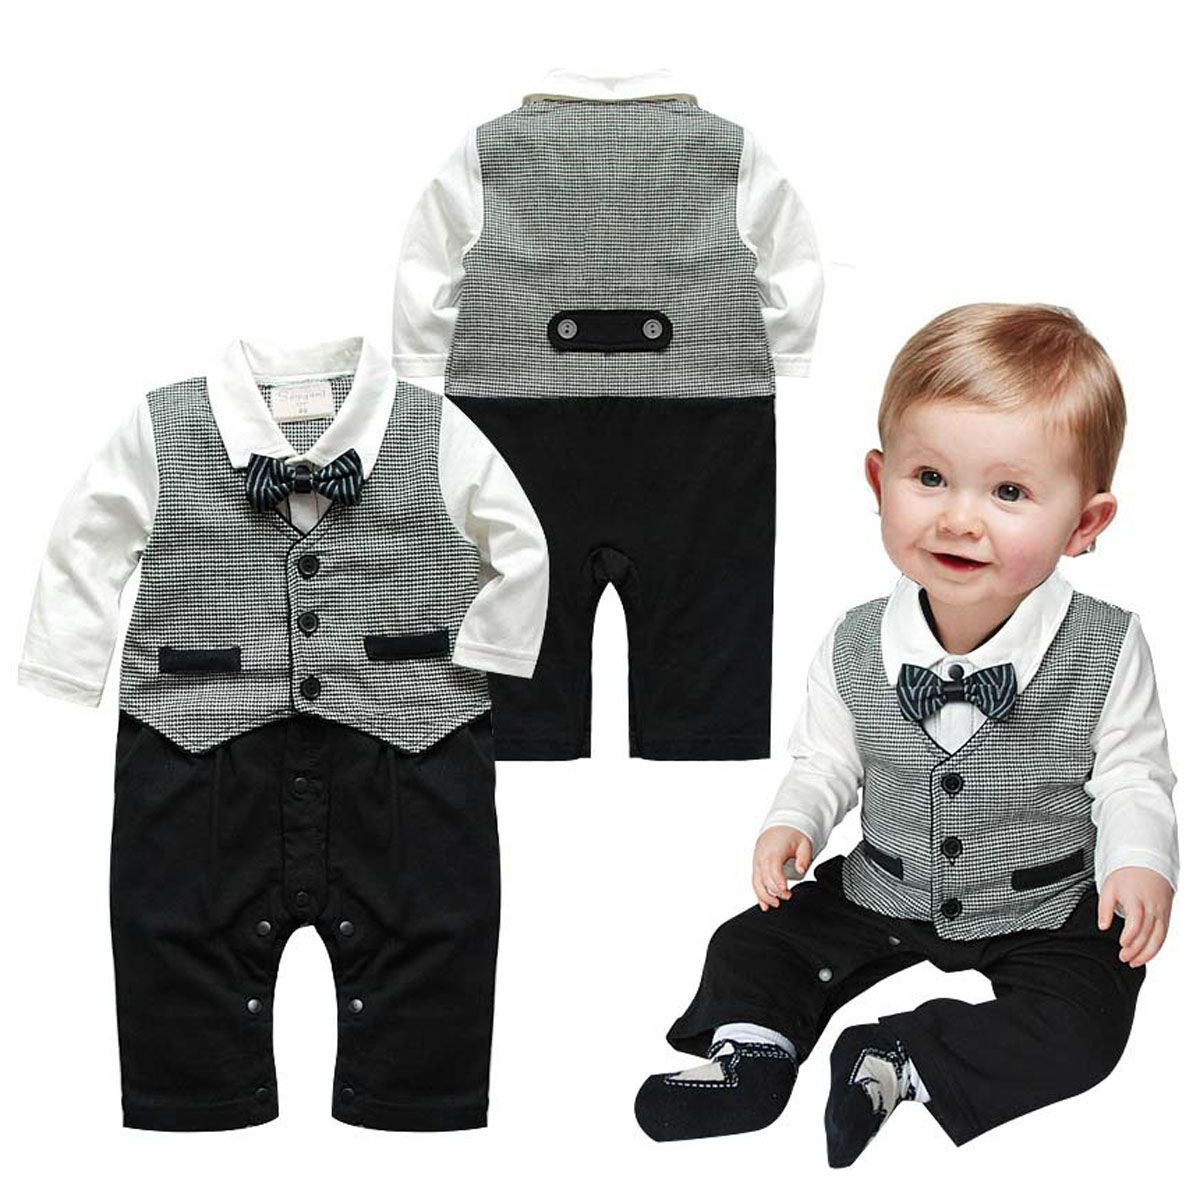 Newborn Baby Boys Infant Gentleman Suit Bow Tie Romper Jumpsuit ...